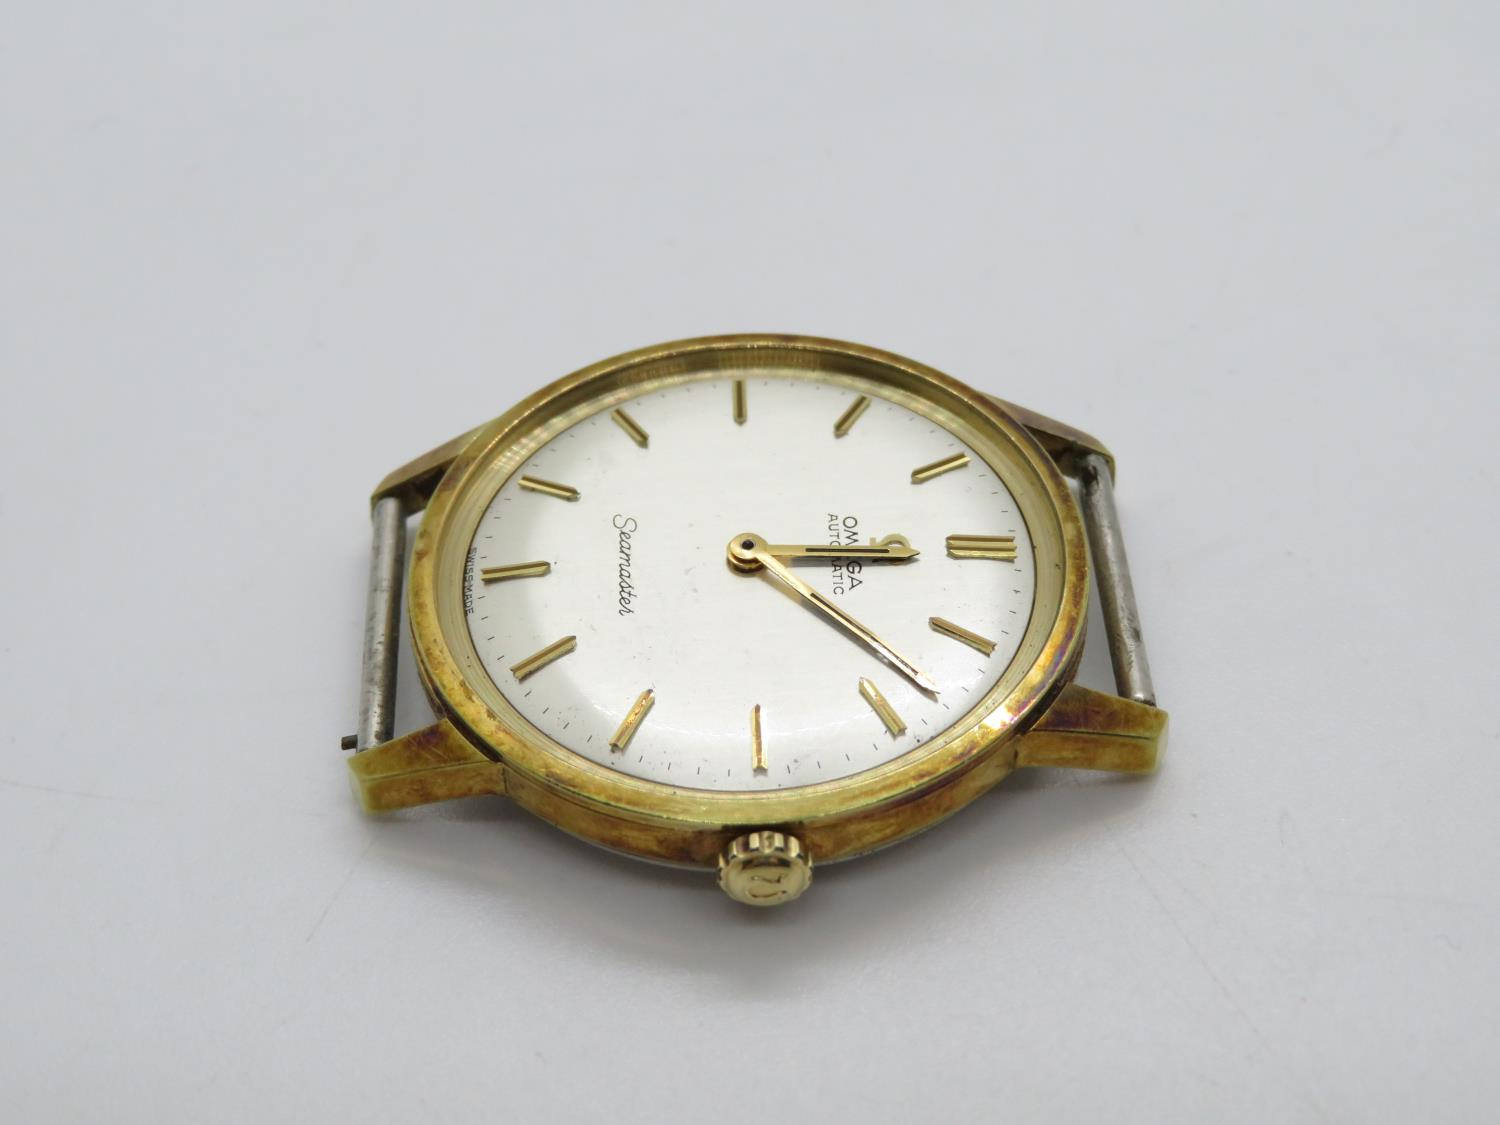 Omega seamster gents vintage gold tone wristwatch head only. hand wind - Image 2 of 3